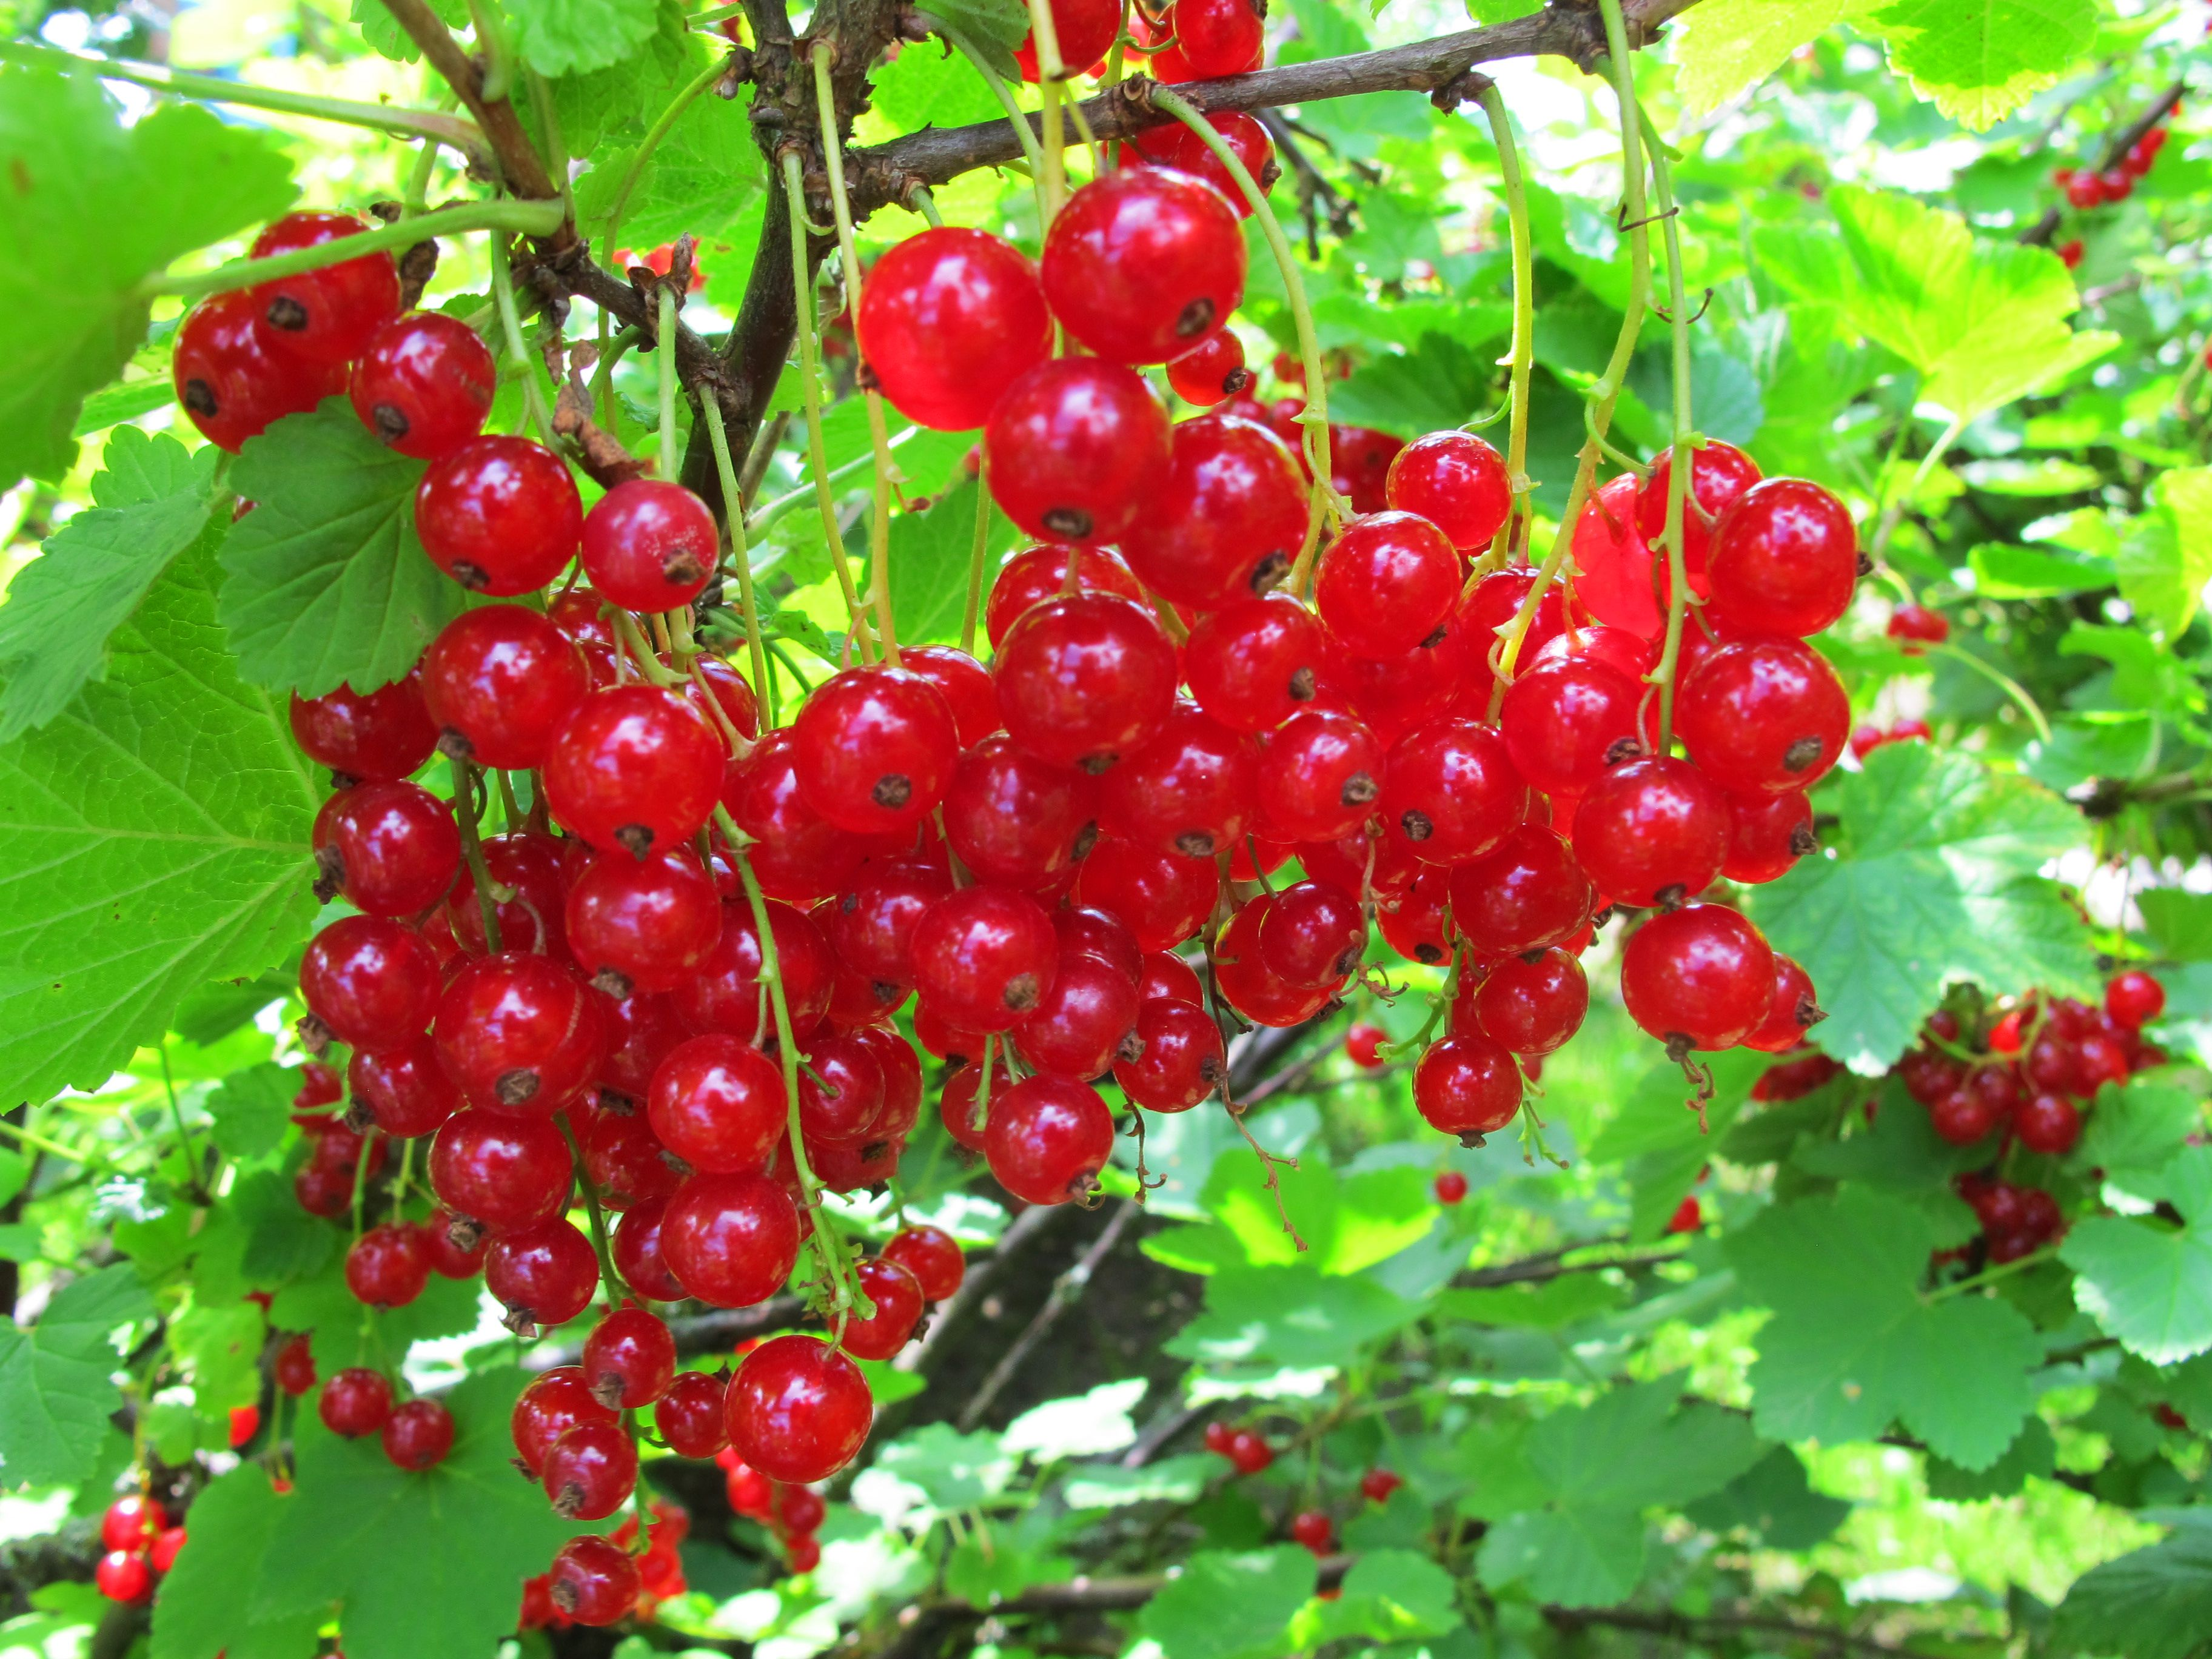 Red Currants | Types of berries, Red currant, Fruit plants